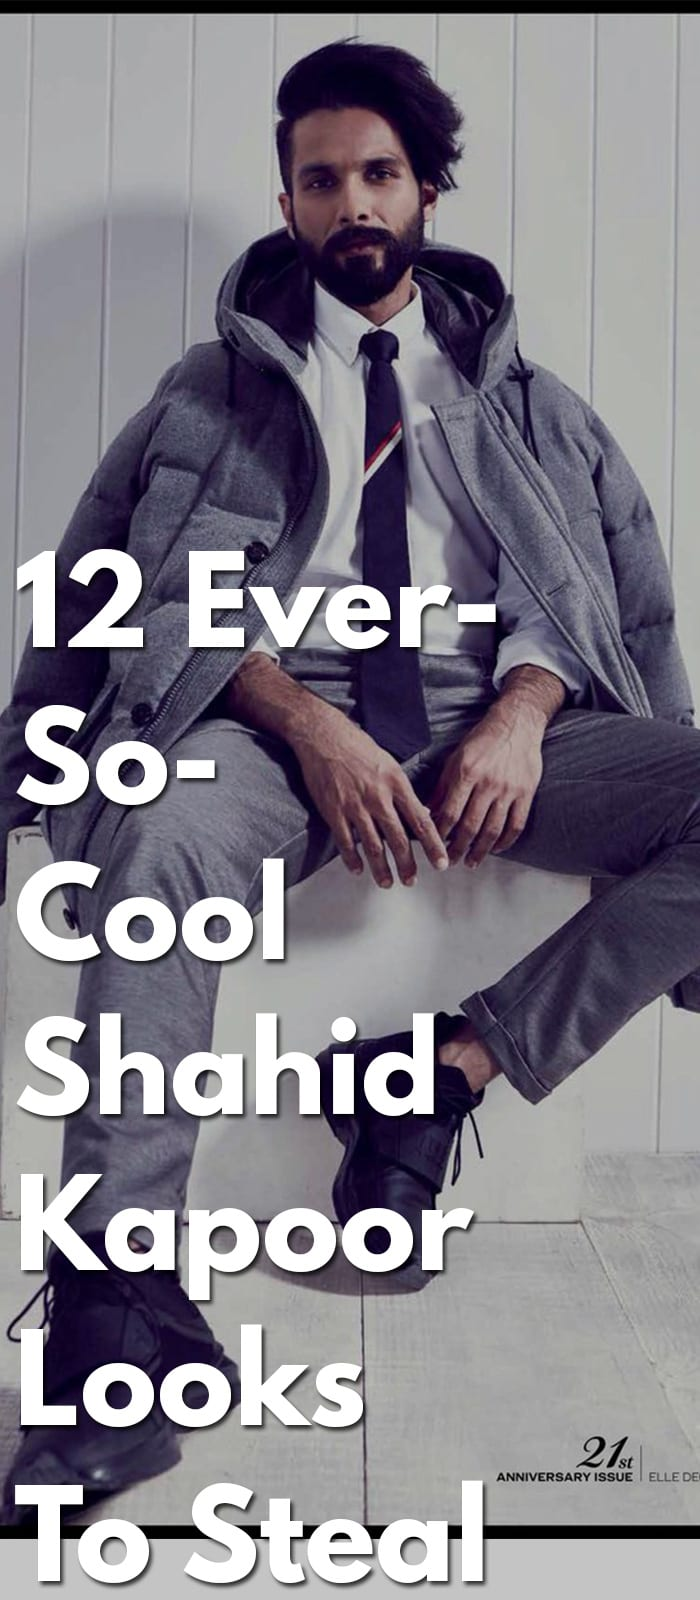 12 Ever-So-Cool Shahid Kapoor Looks To Steal